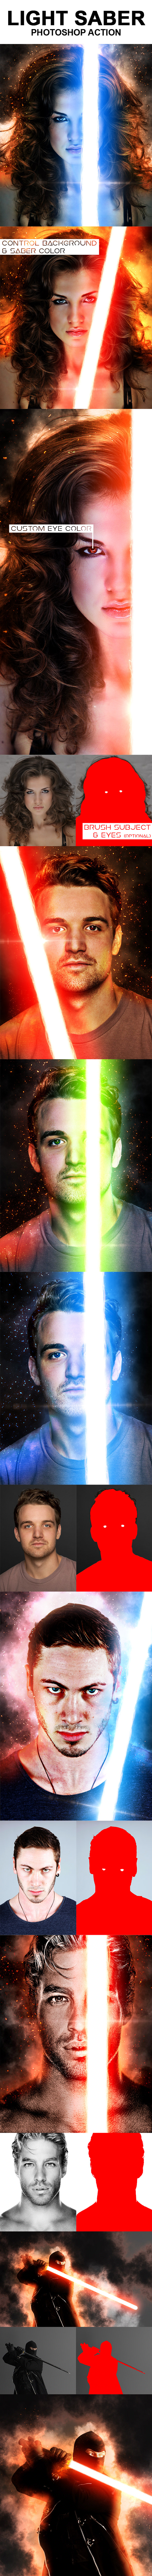 Light Saber Photoshop Action - Photo Effects Actions